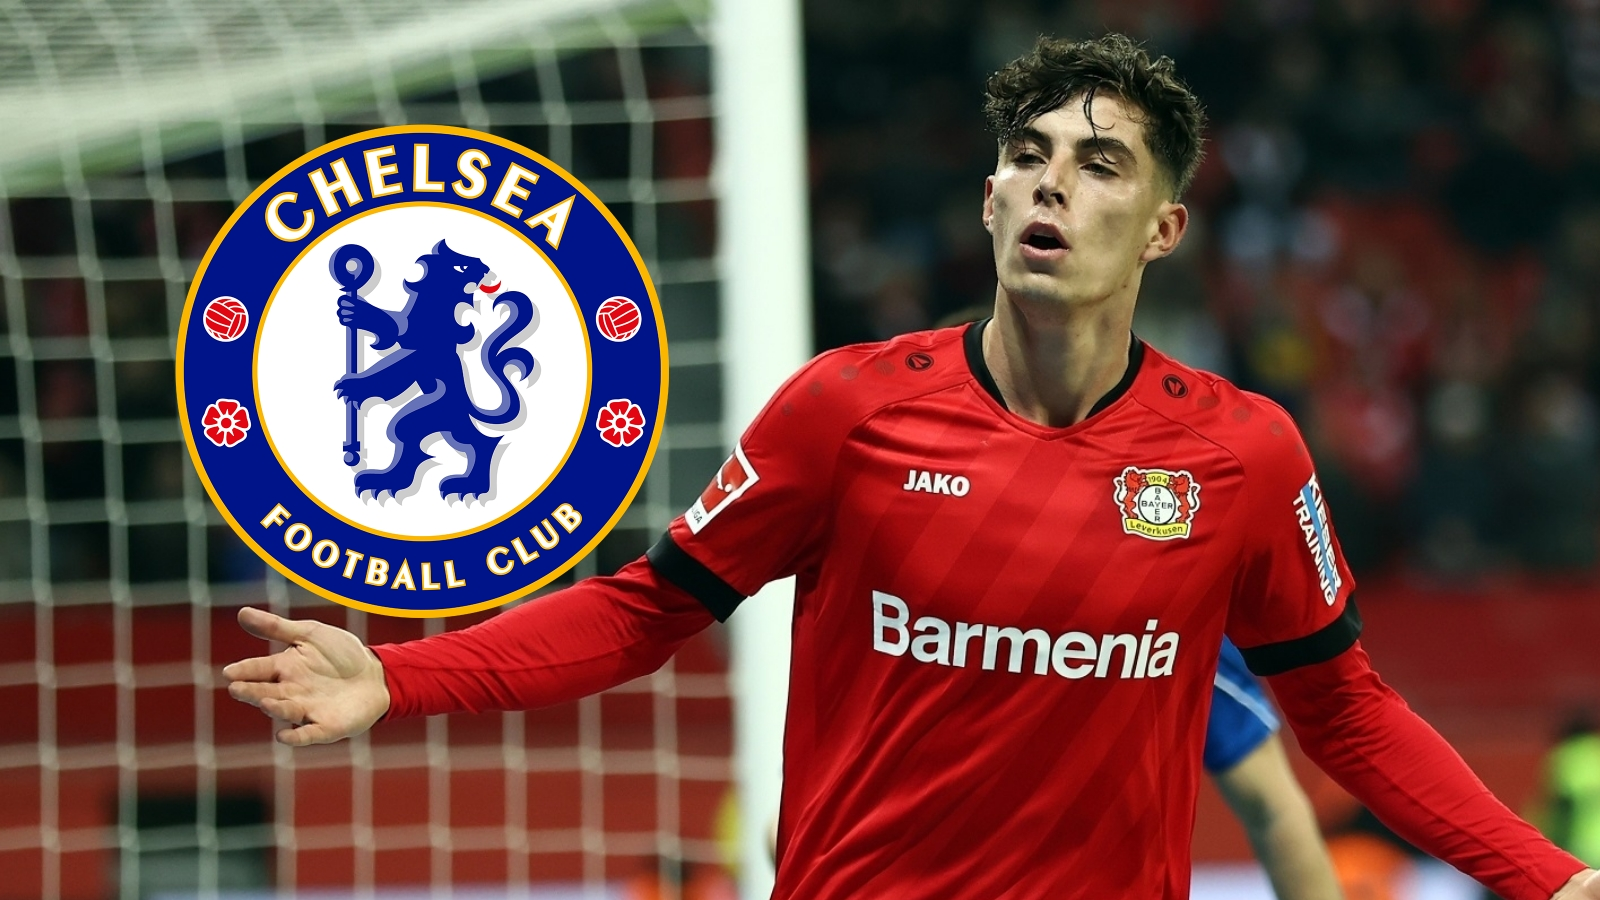 Transfer news and rumours LIVE: Chelsea receive Havertz boost